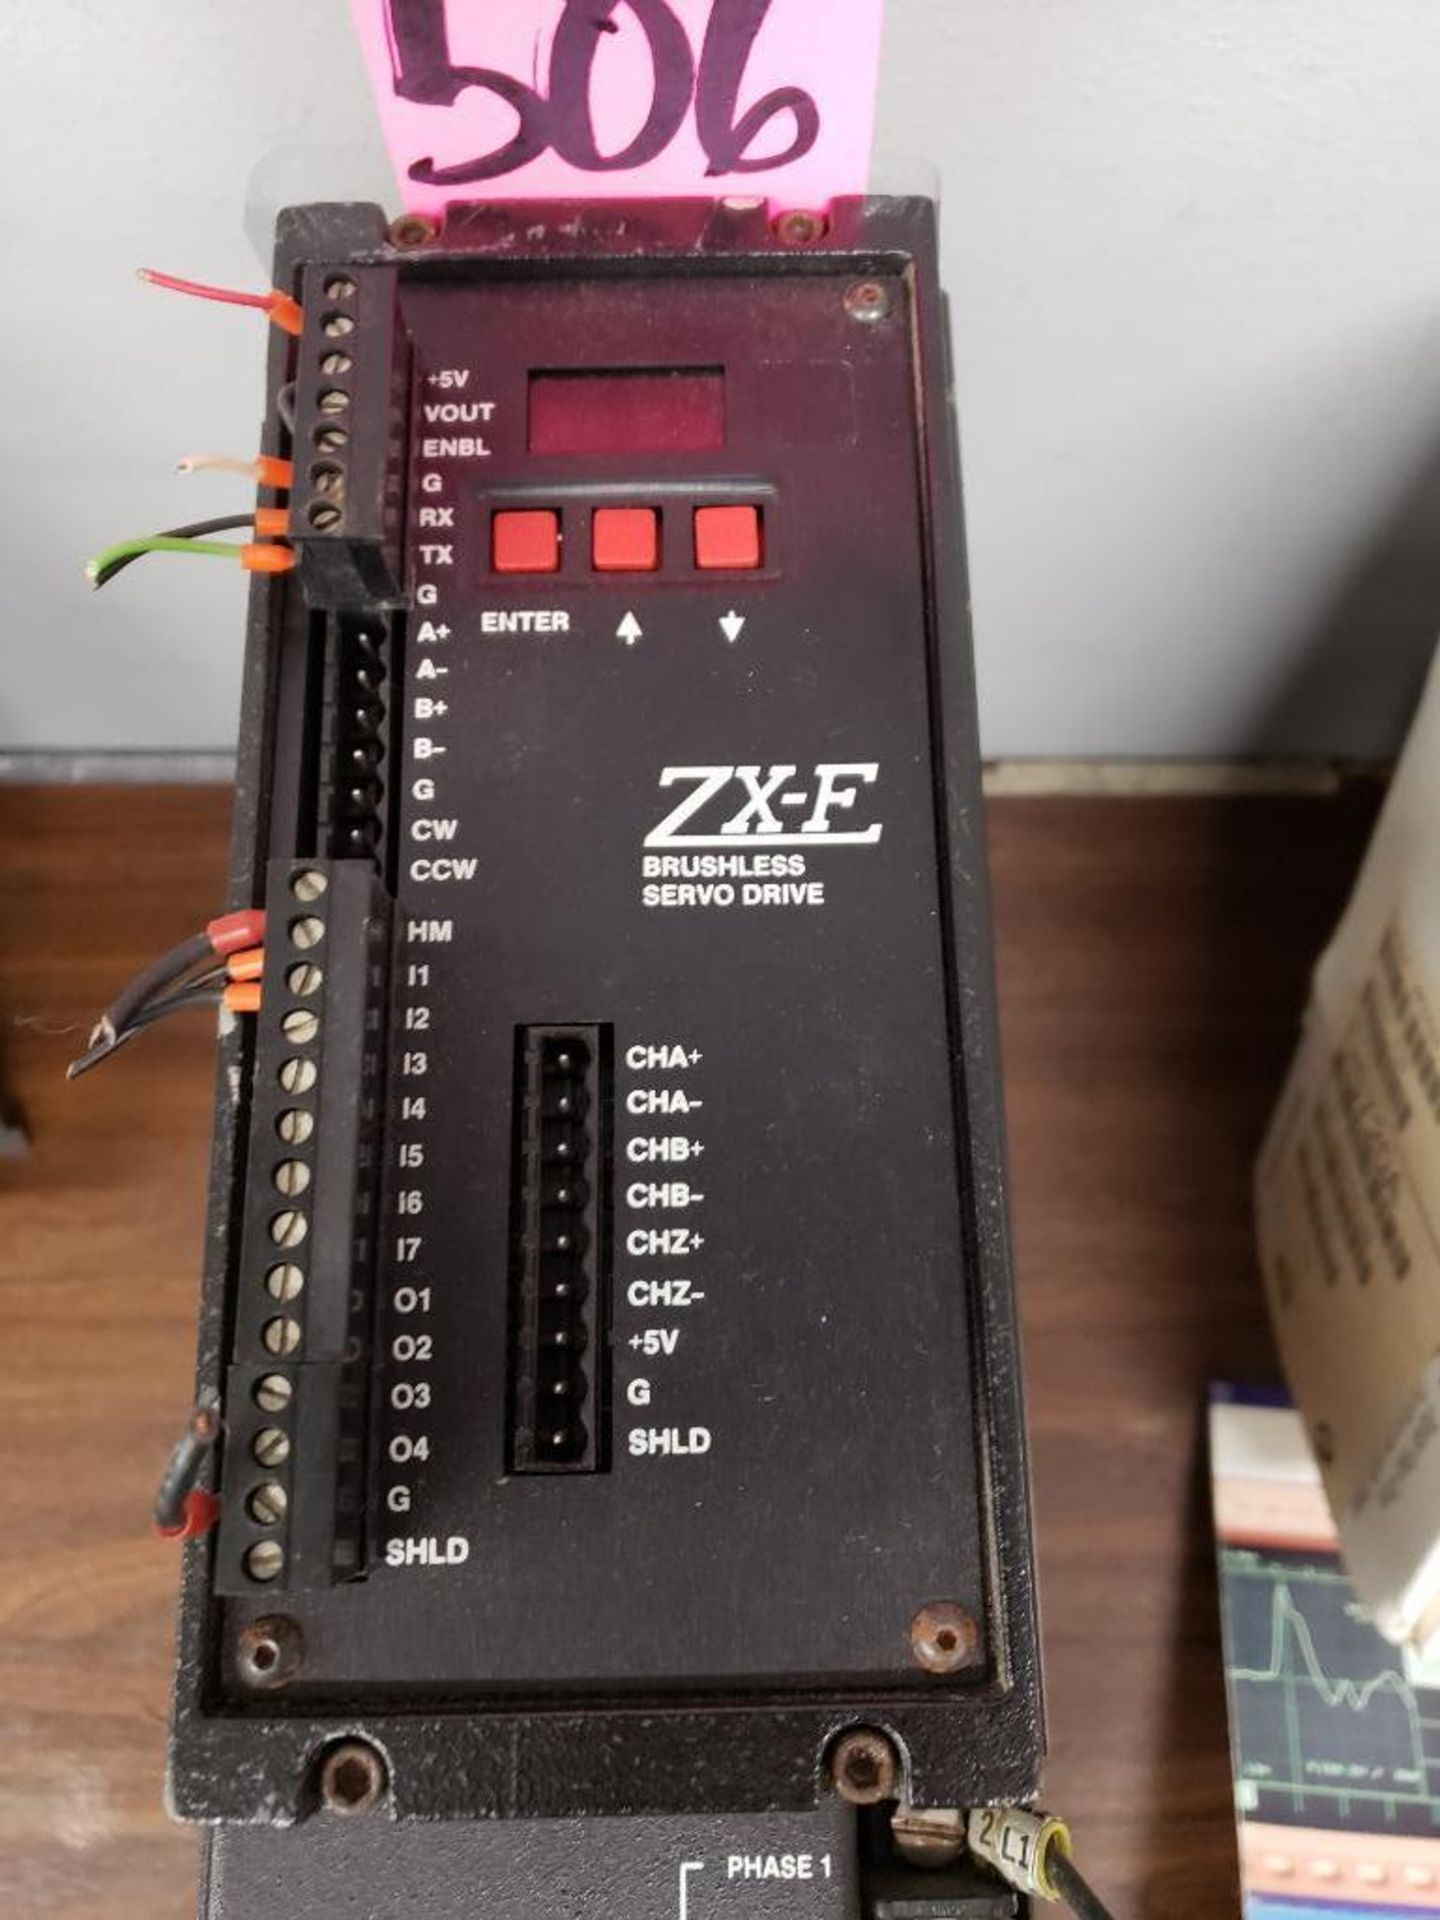 Lot 506 - Parker Compumotor drive model ZXF600-Drive-240V.